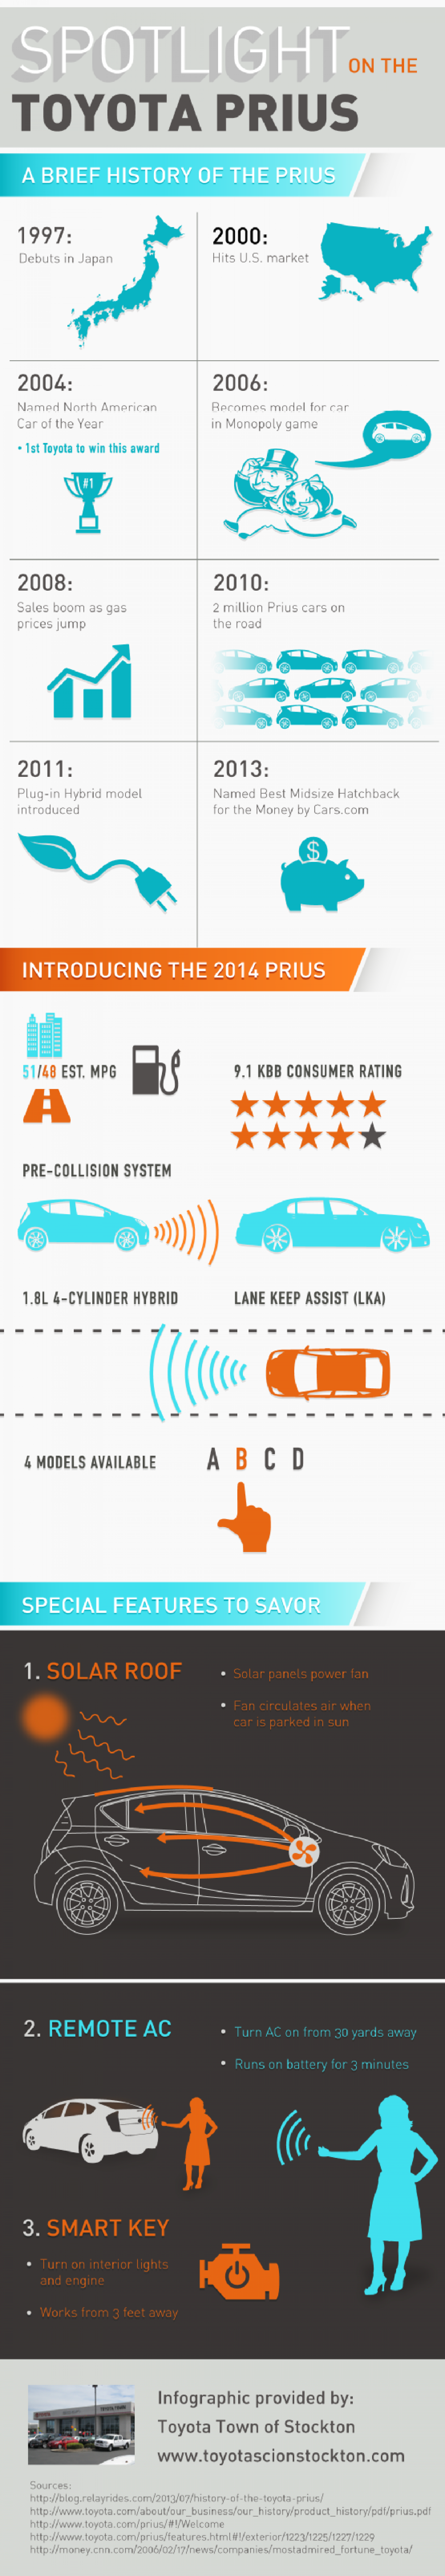 Spotlight on the Toyota Prius  Infographic